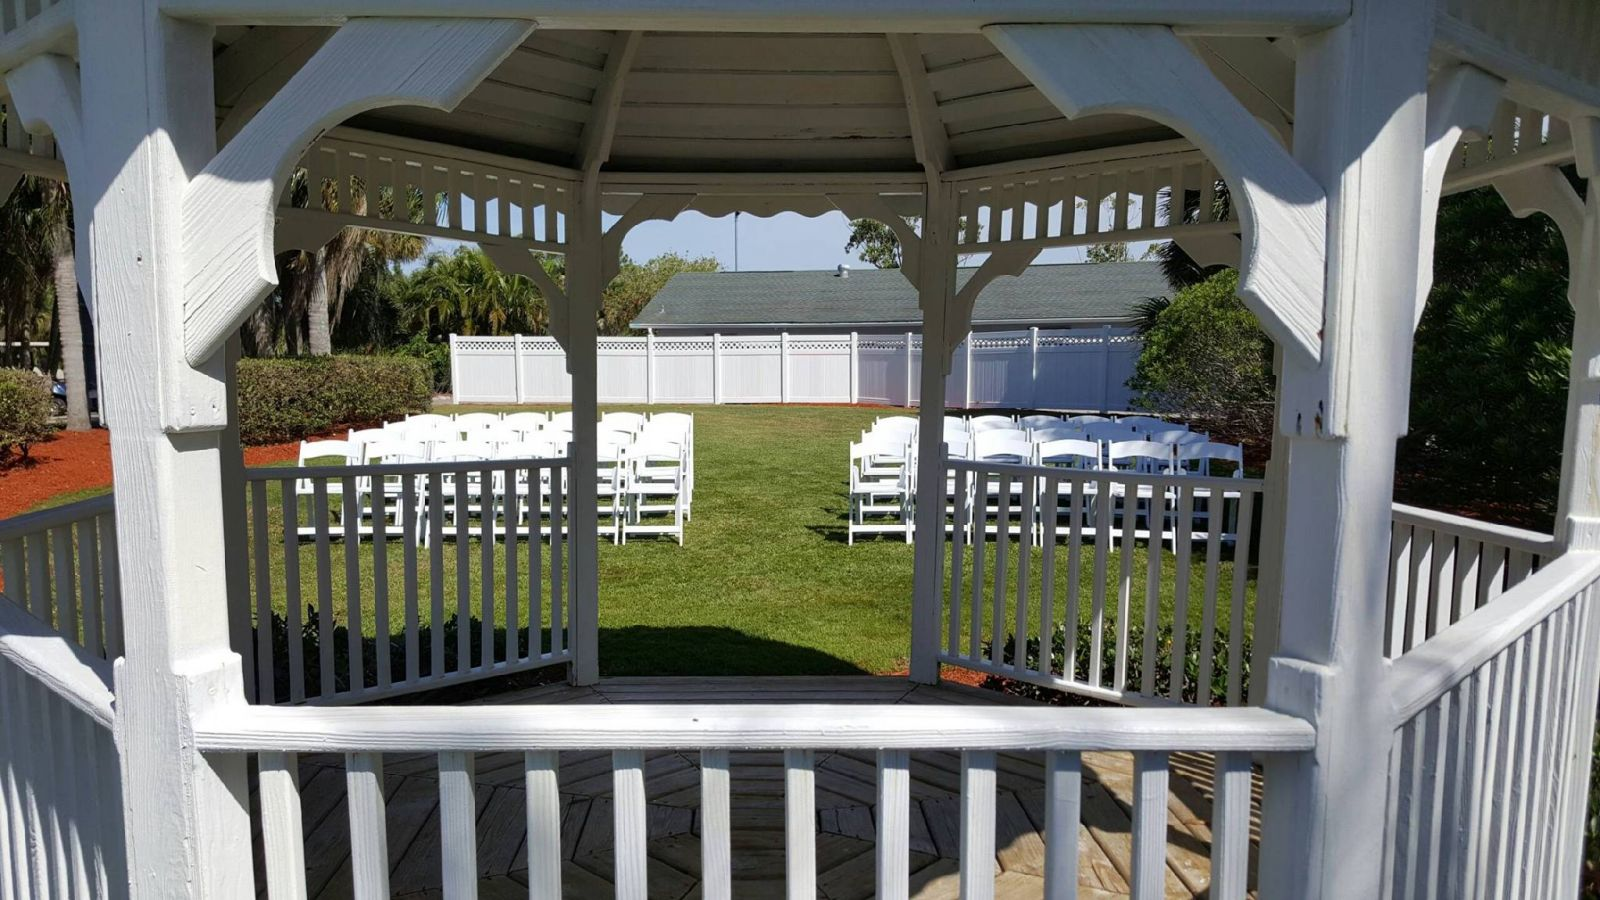 View looking through the gazebo to the guests seating area